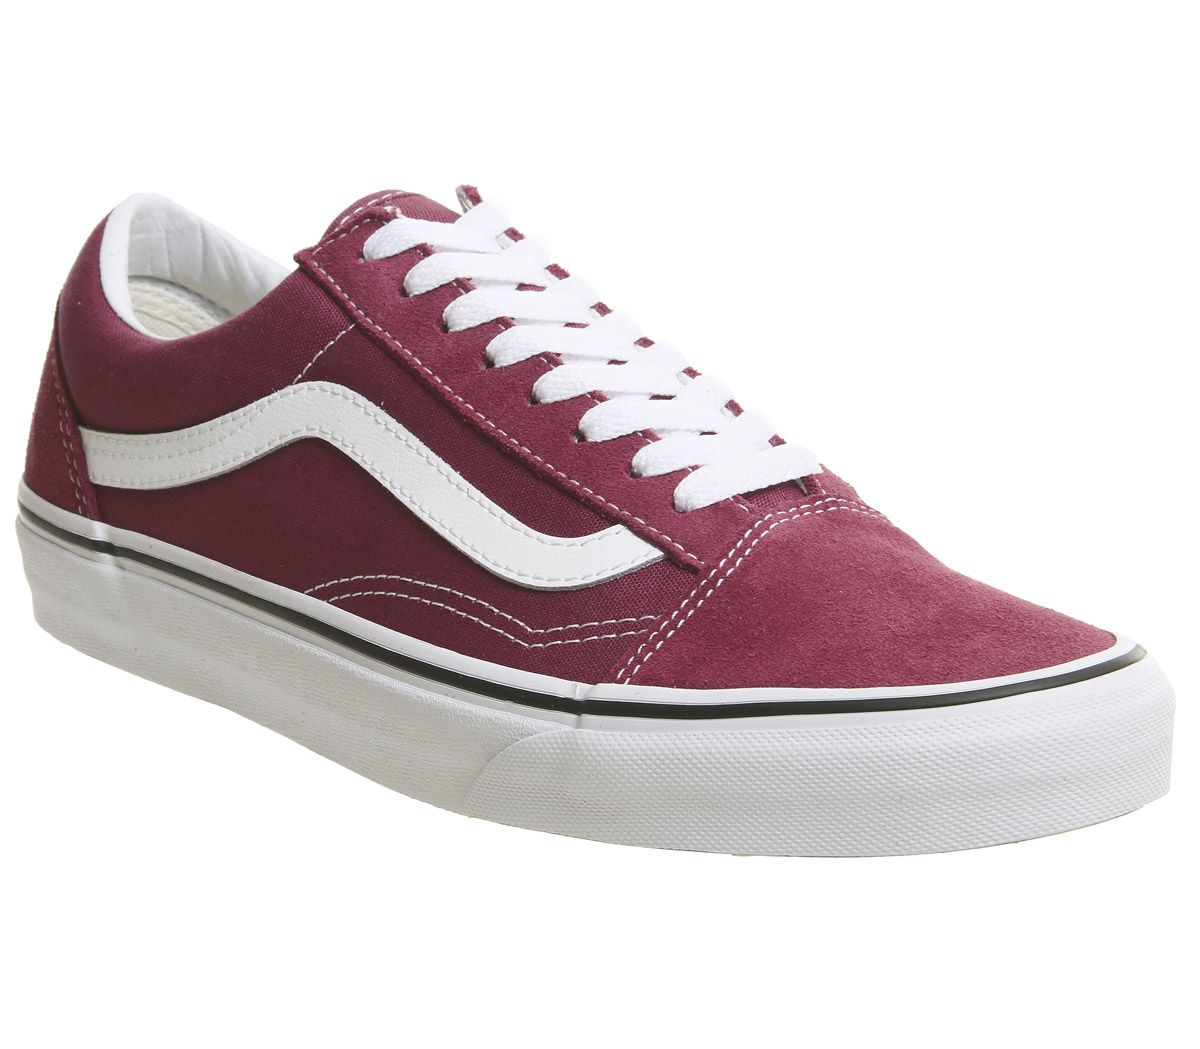 196086183a3 Vans Old Skool Trainers Dry Rose - Unisex Sports